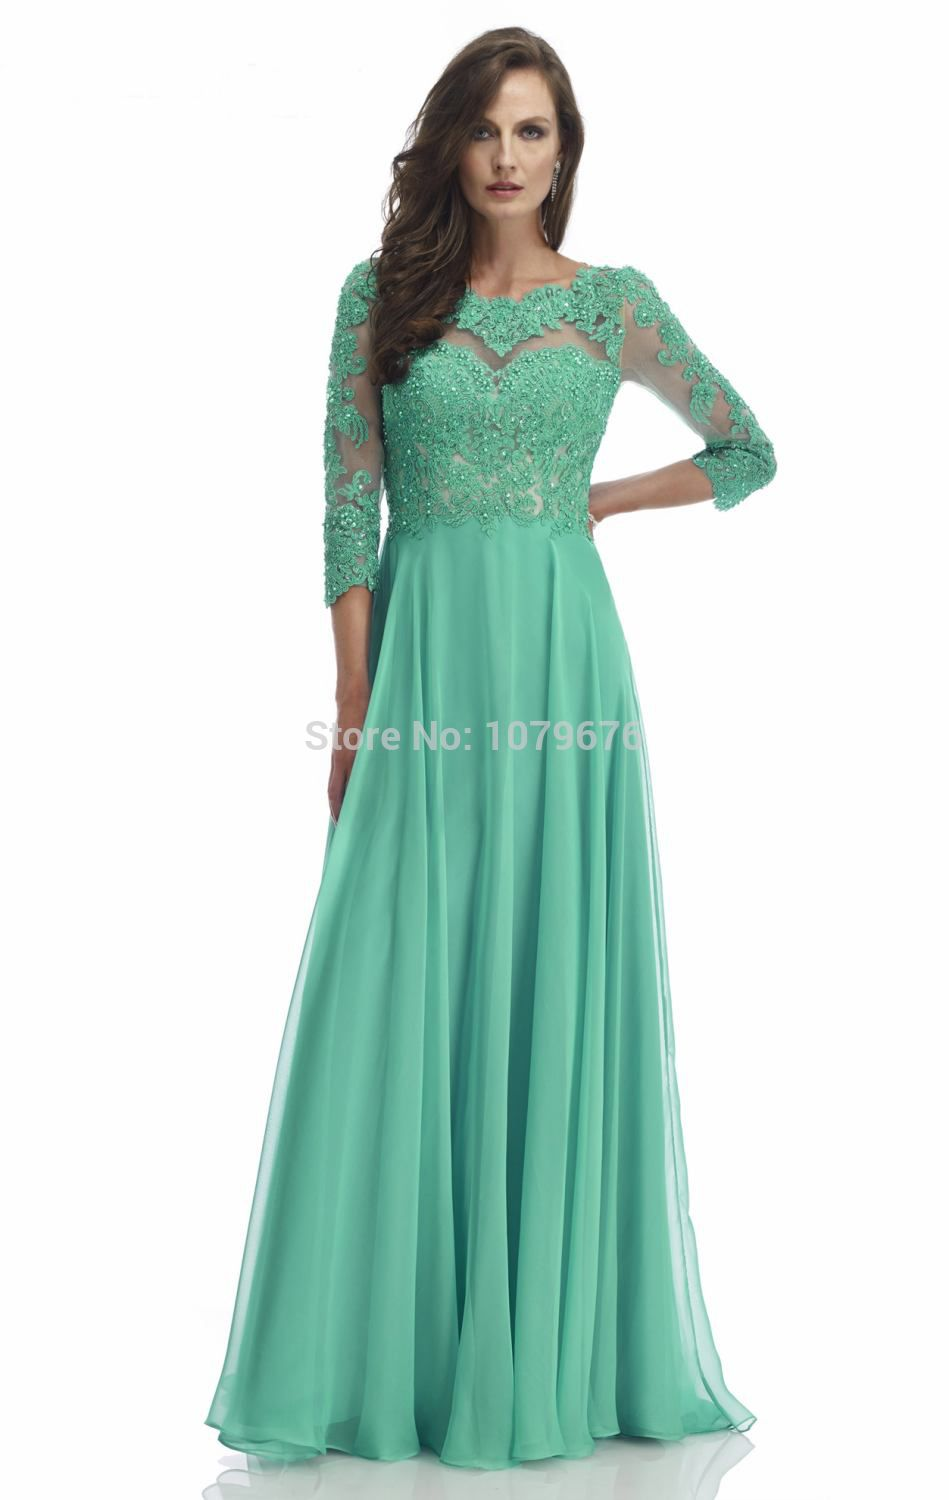 Plus Size See Through Lace Beaded Long Sleeve Prom Evening Dress ...